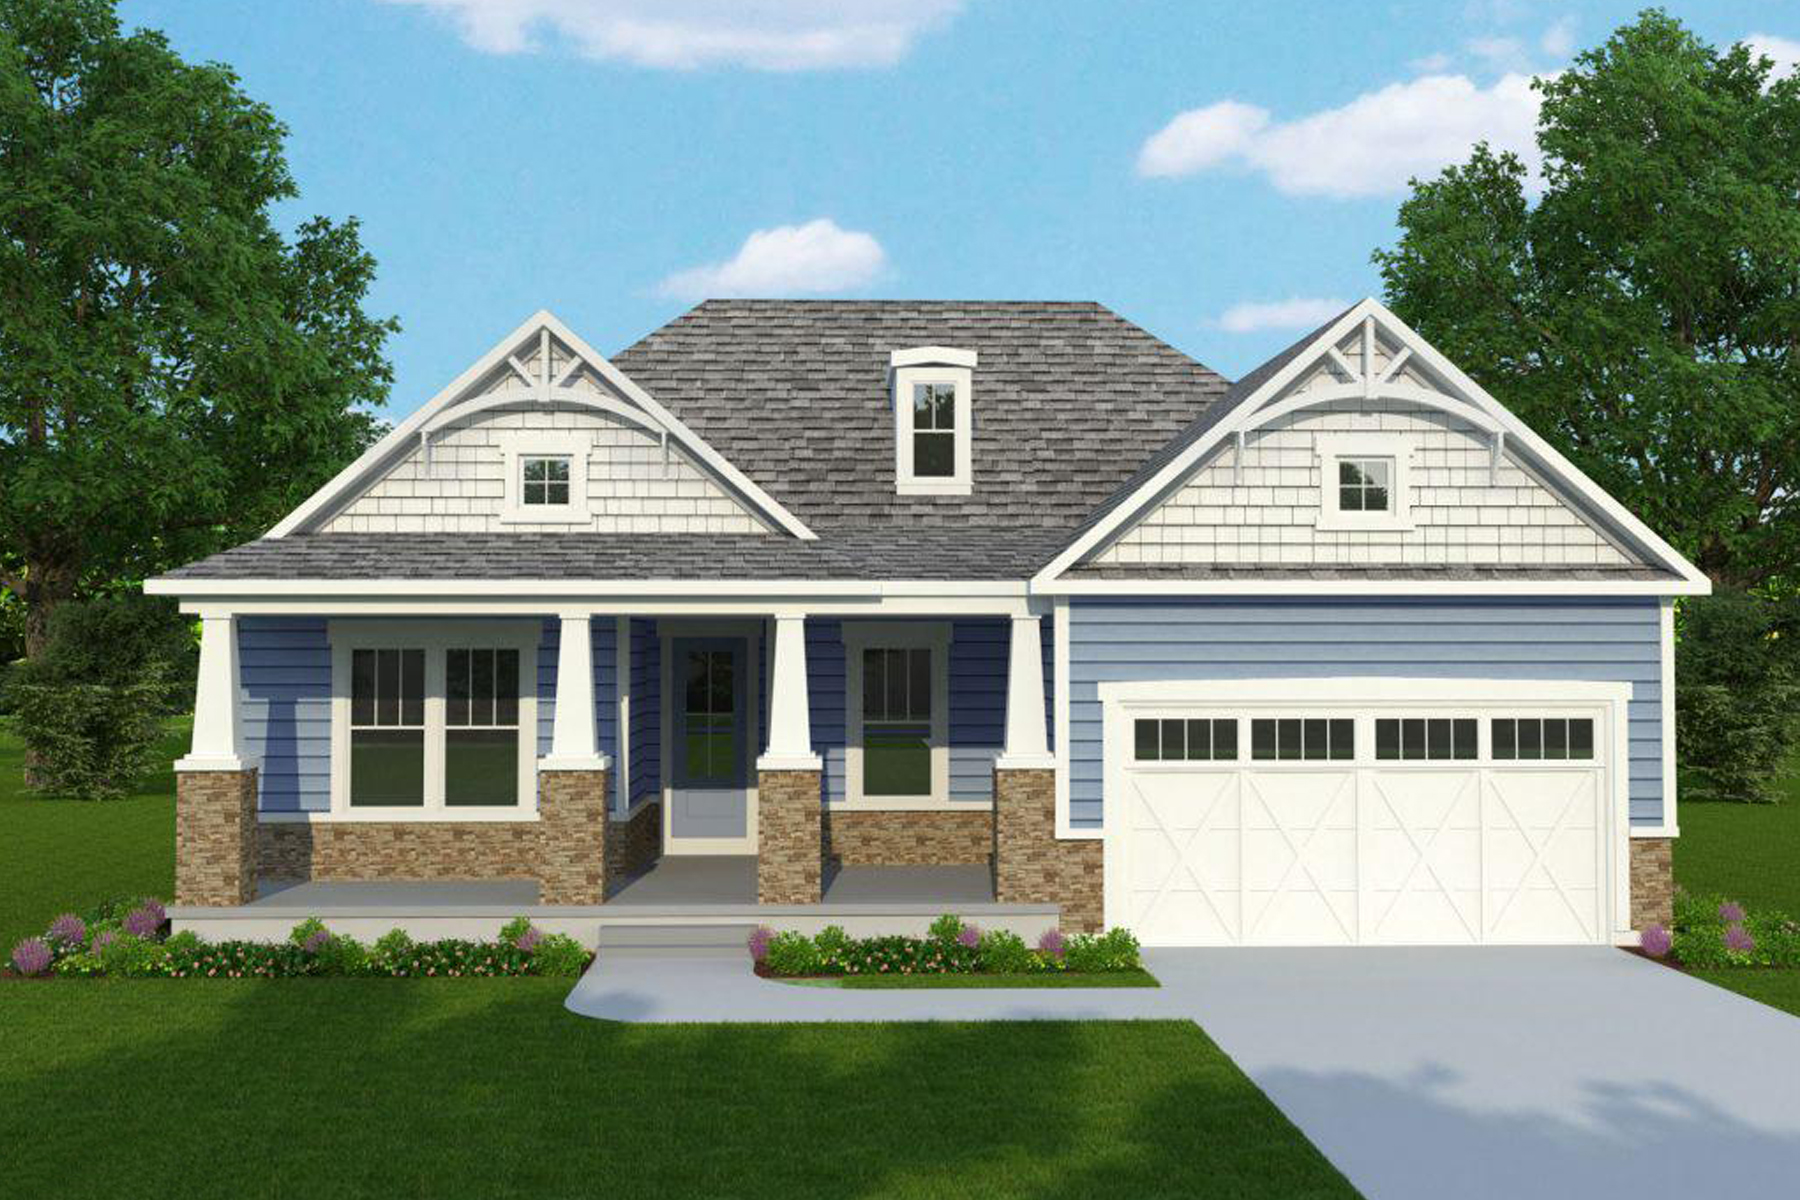 Single Family Homes for Active at 26052 Marys Lane Milton, Delaware 19968 United States